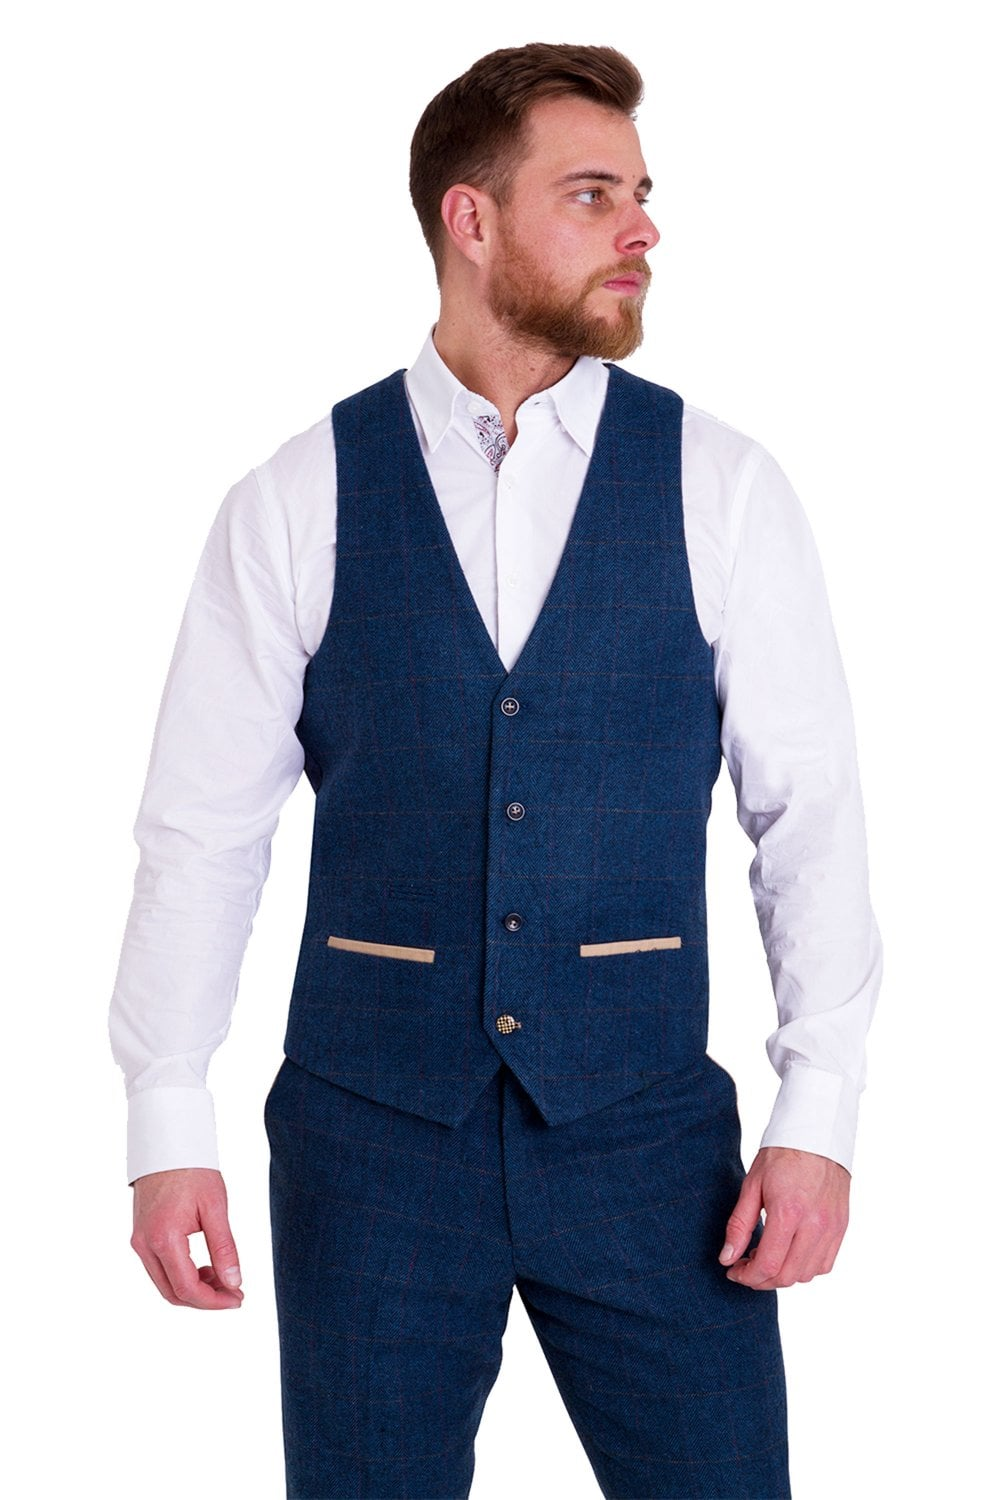 latest trends clearance sale special selection of Marc Darcy Marc Darcy Dion Blue Vintage Check Tweed Waistcoat